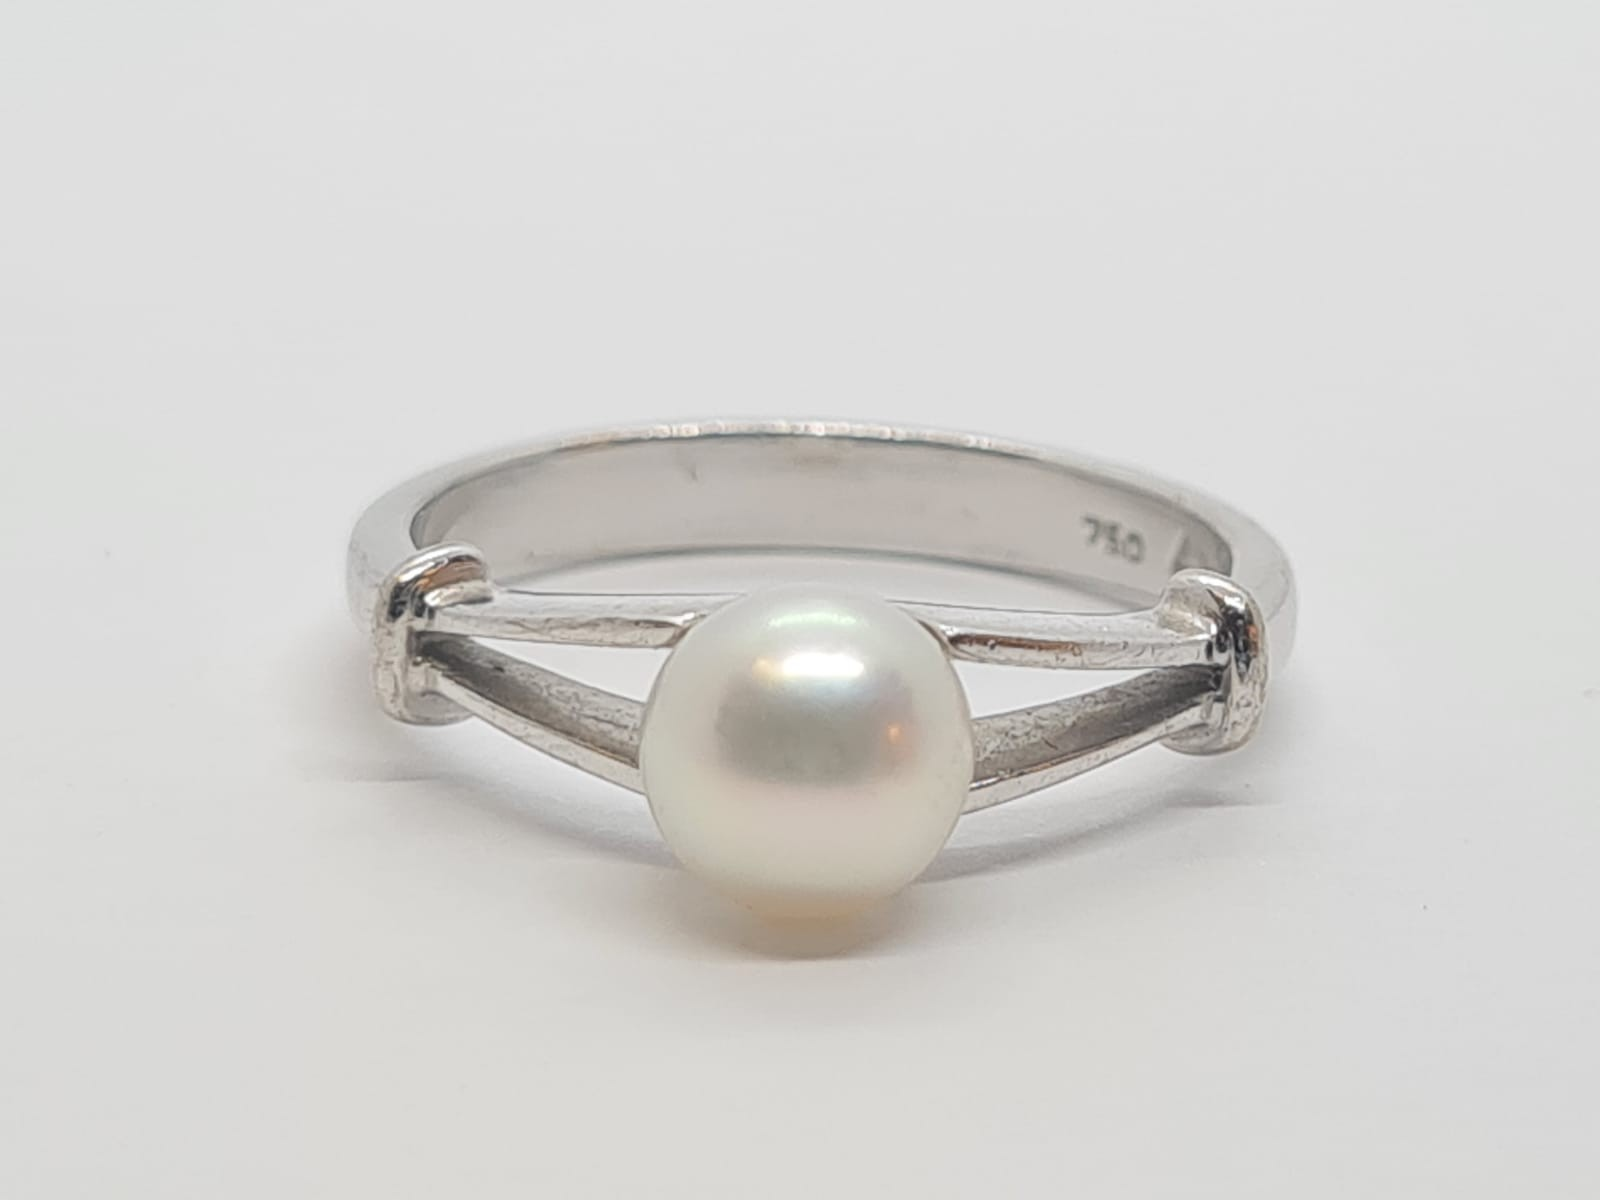 18k white gold PEARL Solitaire RING, weight 3.9G size M